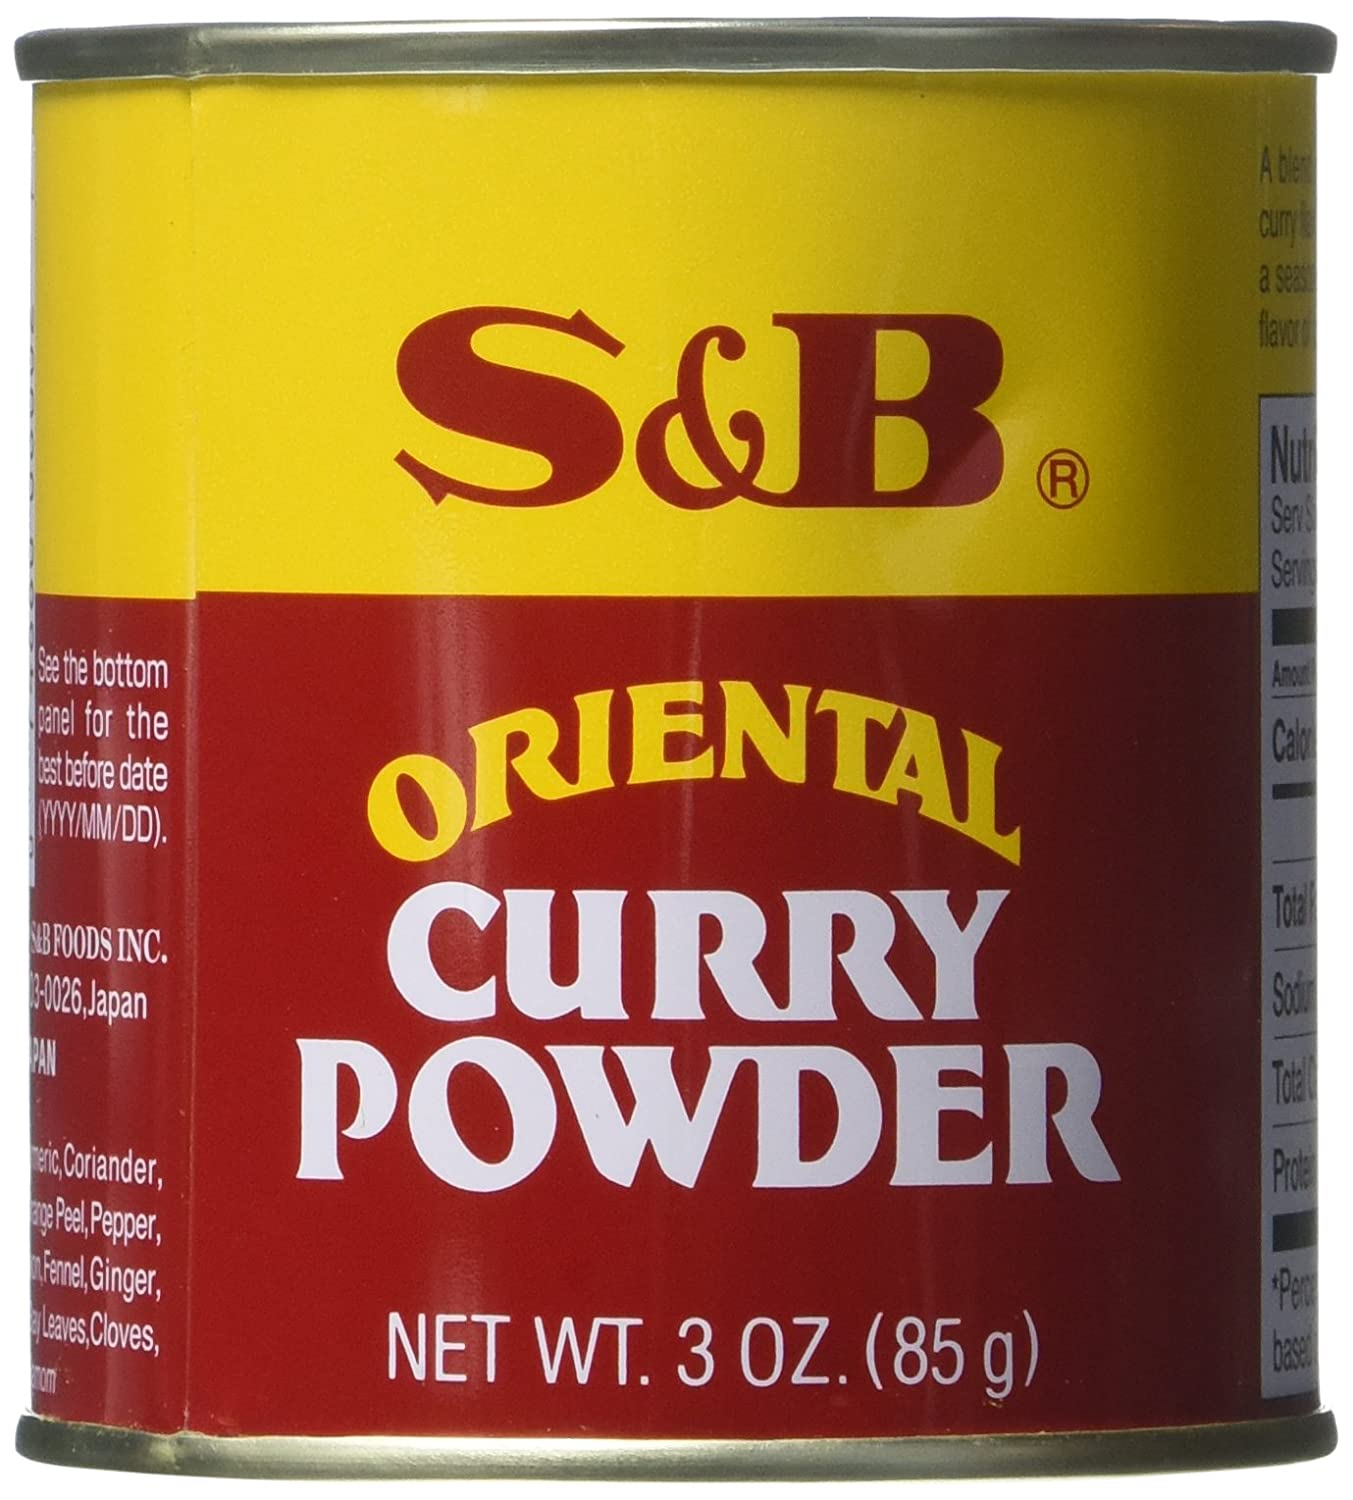 Amazon.com : S&B Curry Powder, Oriental, 3 oz (85 g) (Pack of 2) : Grocery &  Gourmet Food